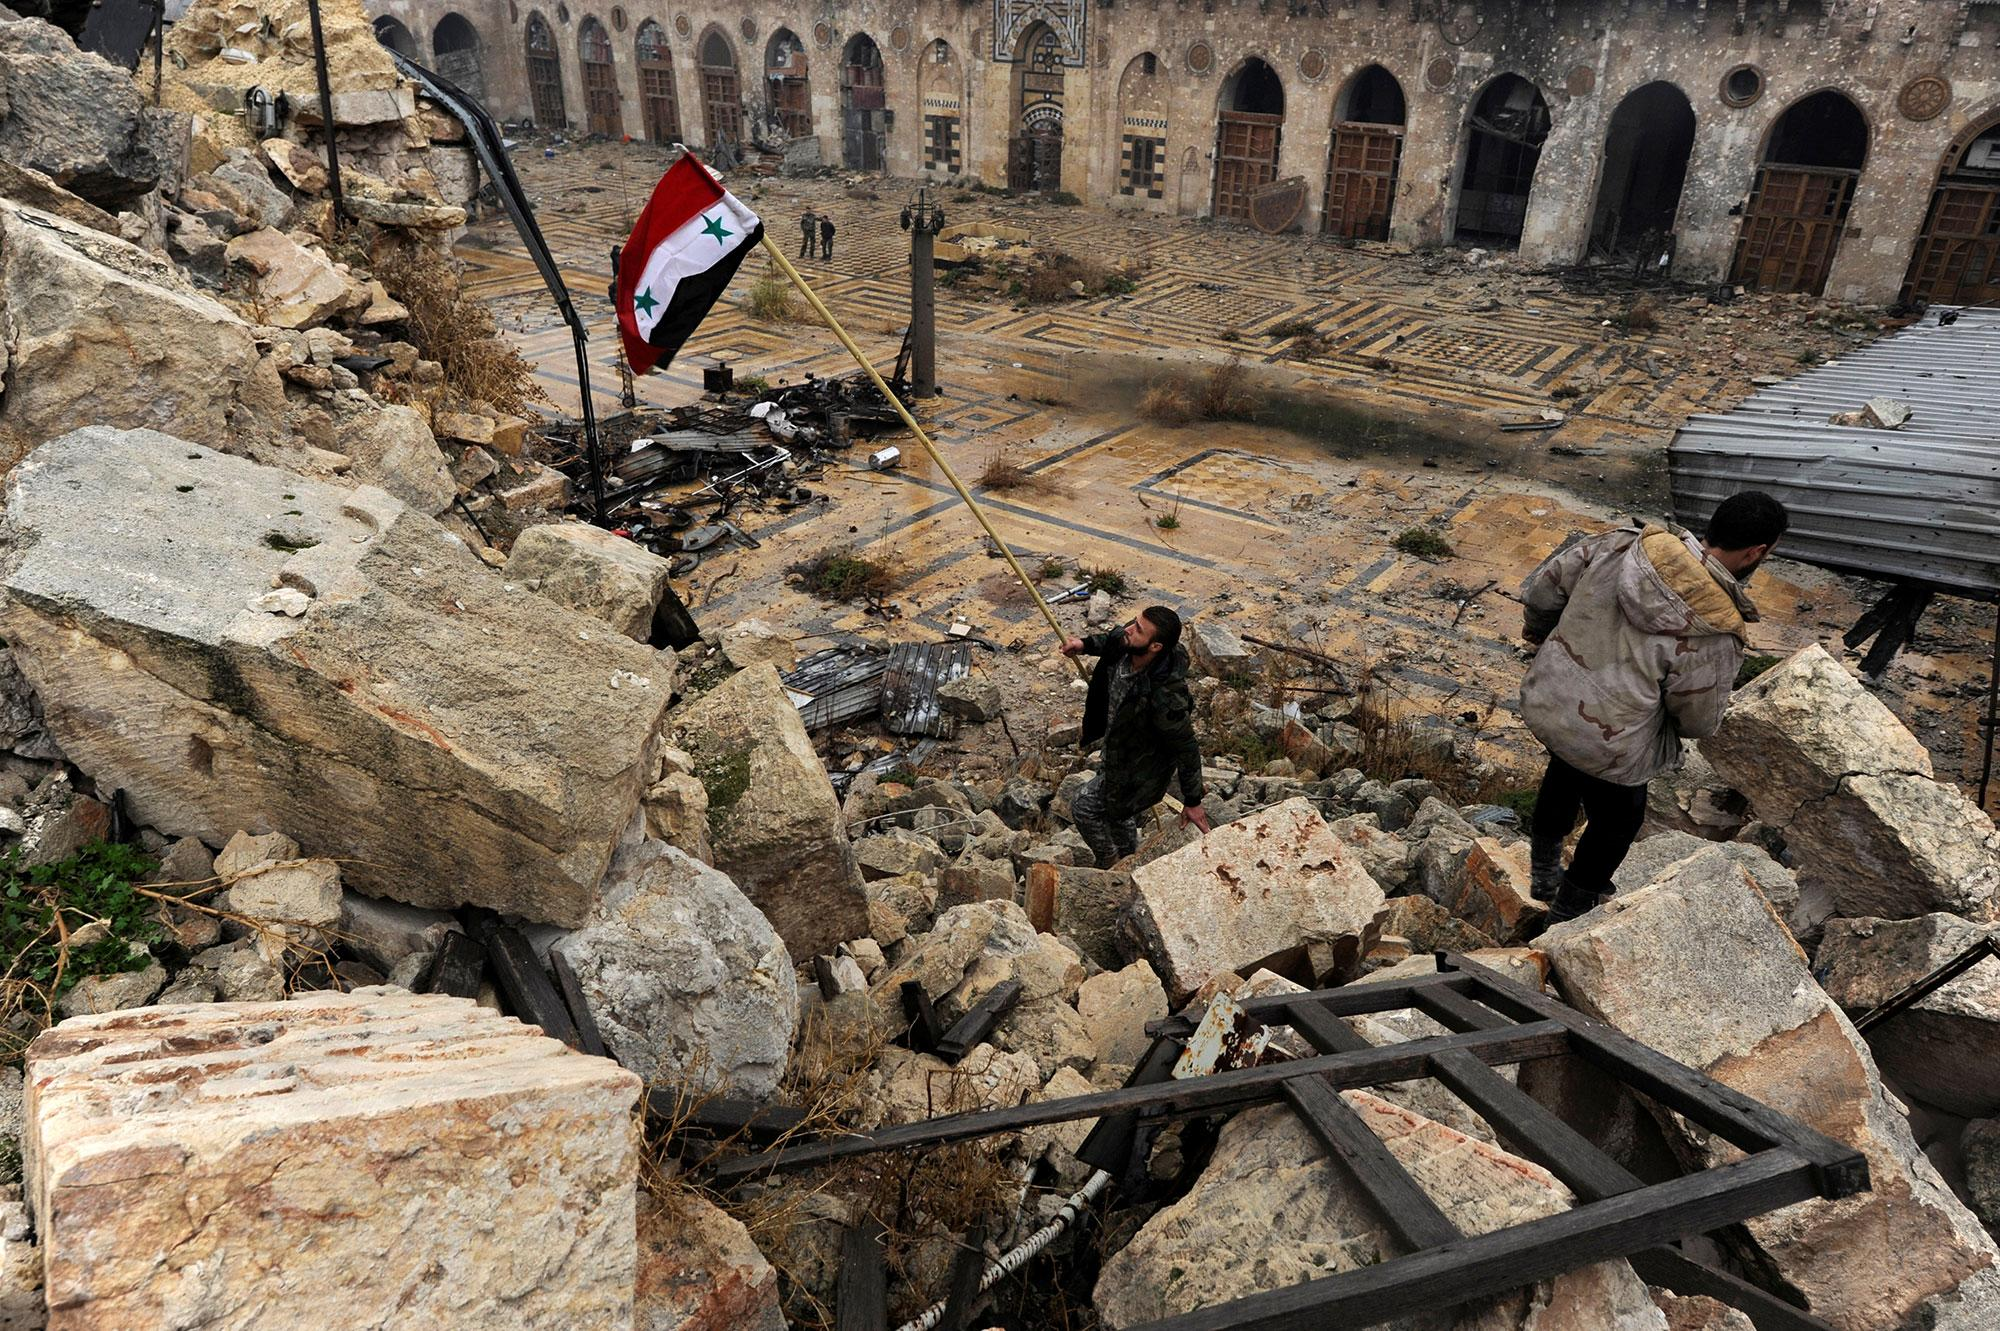 <p>A member of forces loyal to Syria's President Bashar al-Assad attempts to erect the Syrian national flag inside the Umayyad mosque, in the government-controlled area of Aleppo, during a media tour, Syria on Dec.13, 2016. (Photo: Omar Sanadiki/Reuters) </p>